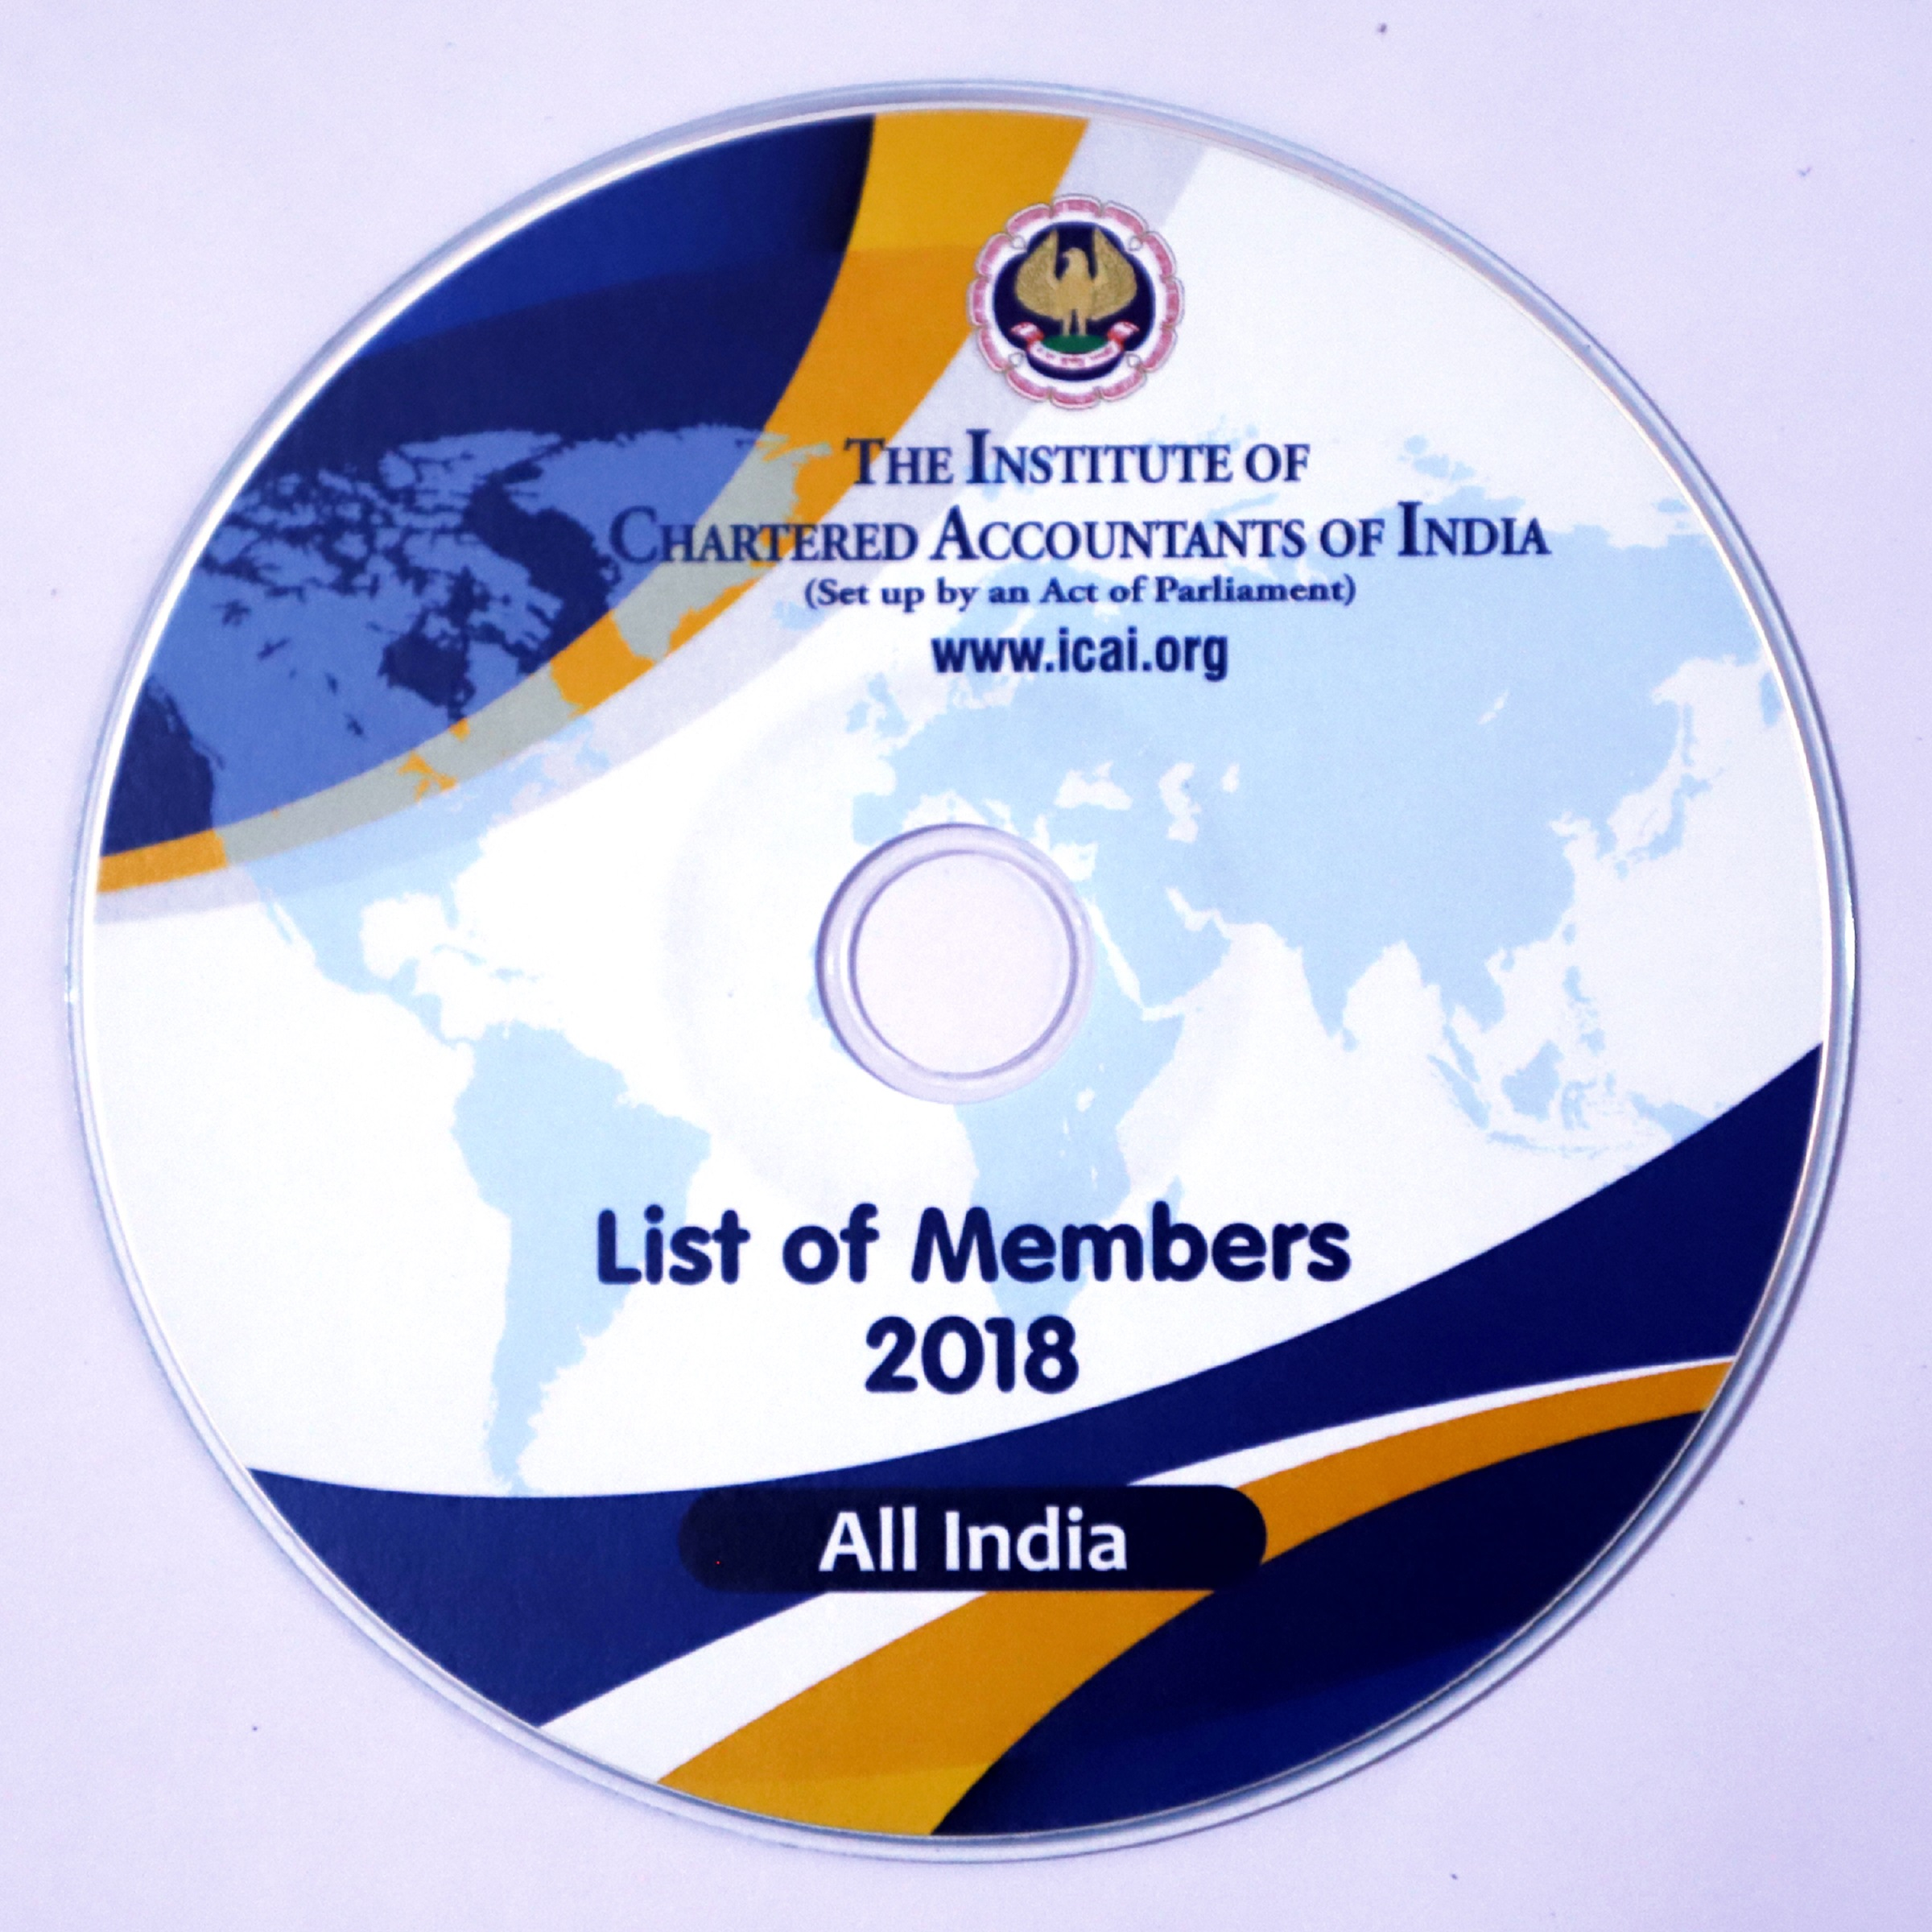 CD List of Members (April 1, 2018) - All India Basis